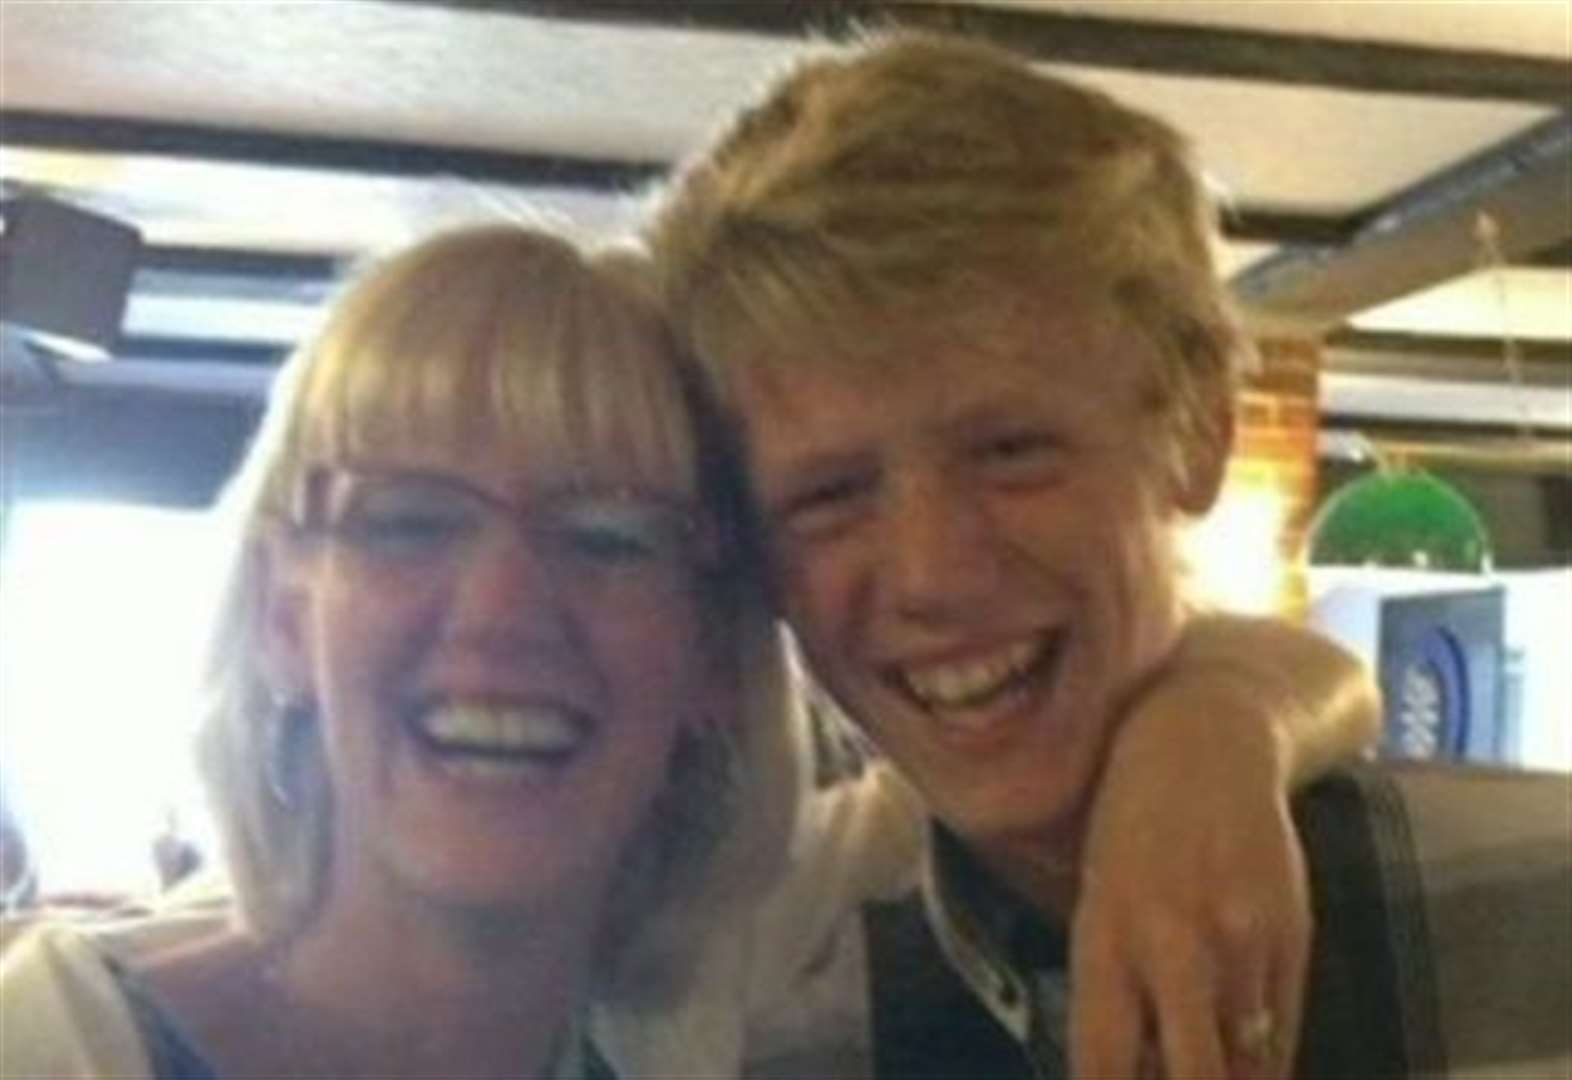 The Kent mum winning the fight against killer drug